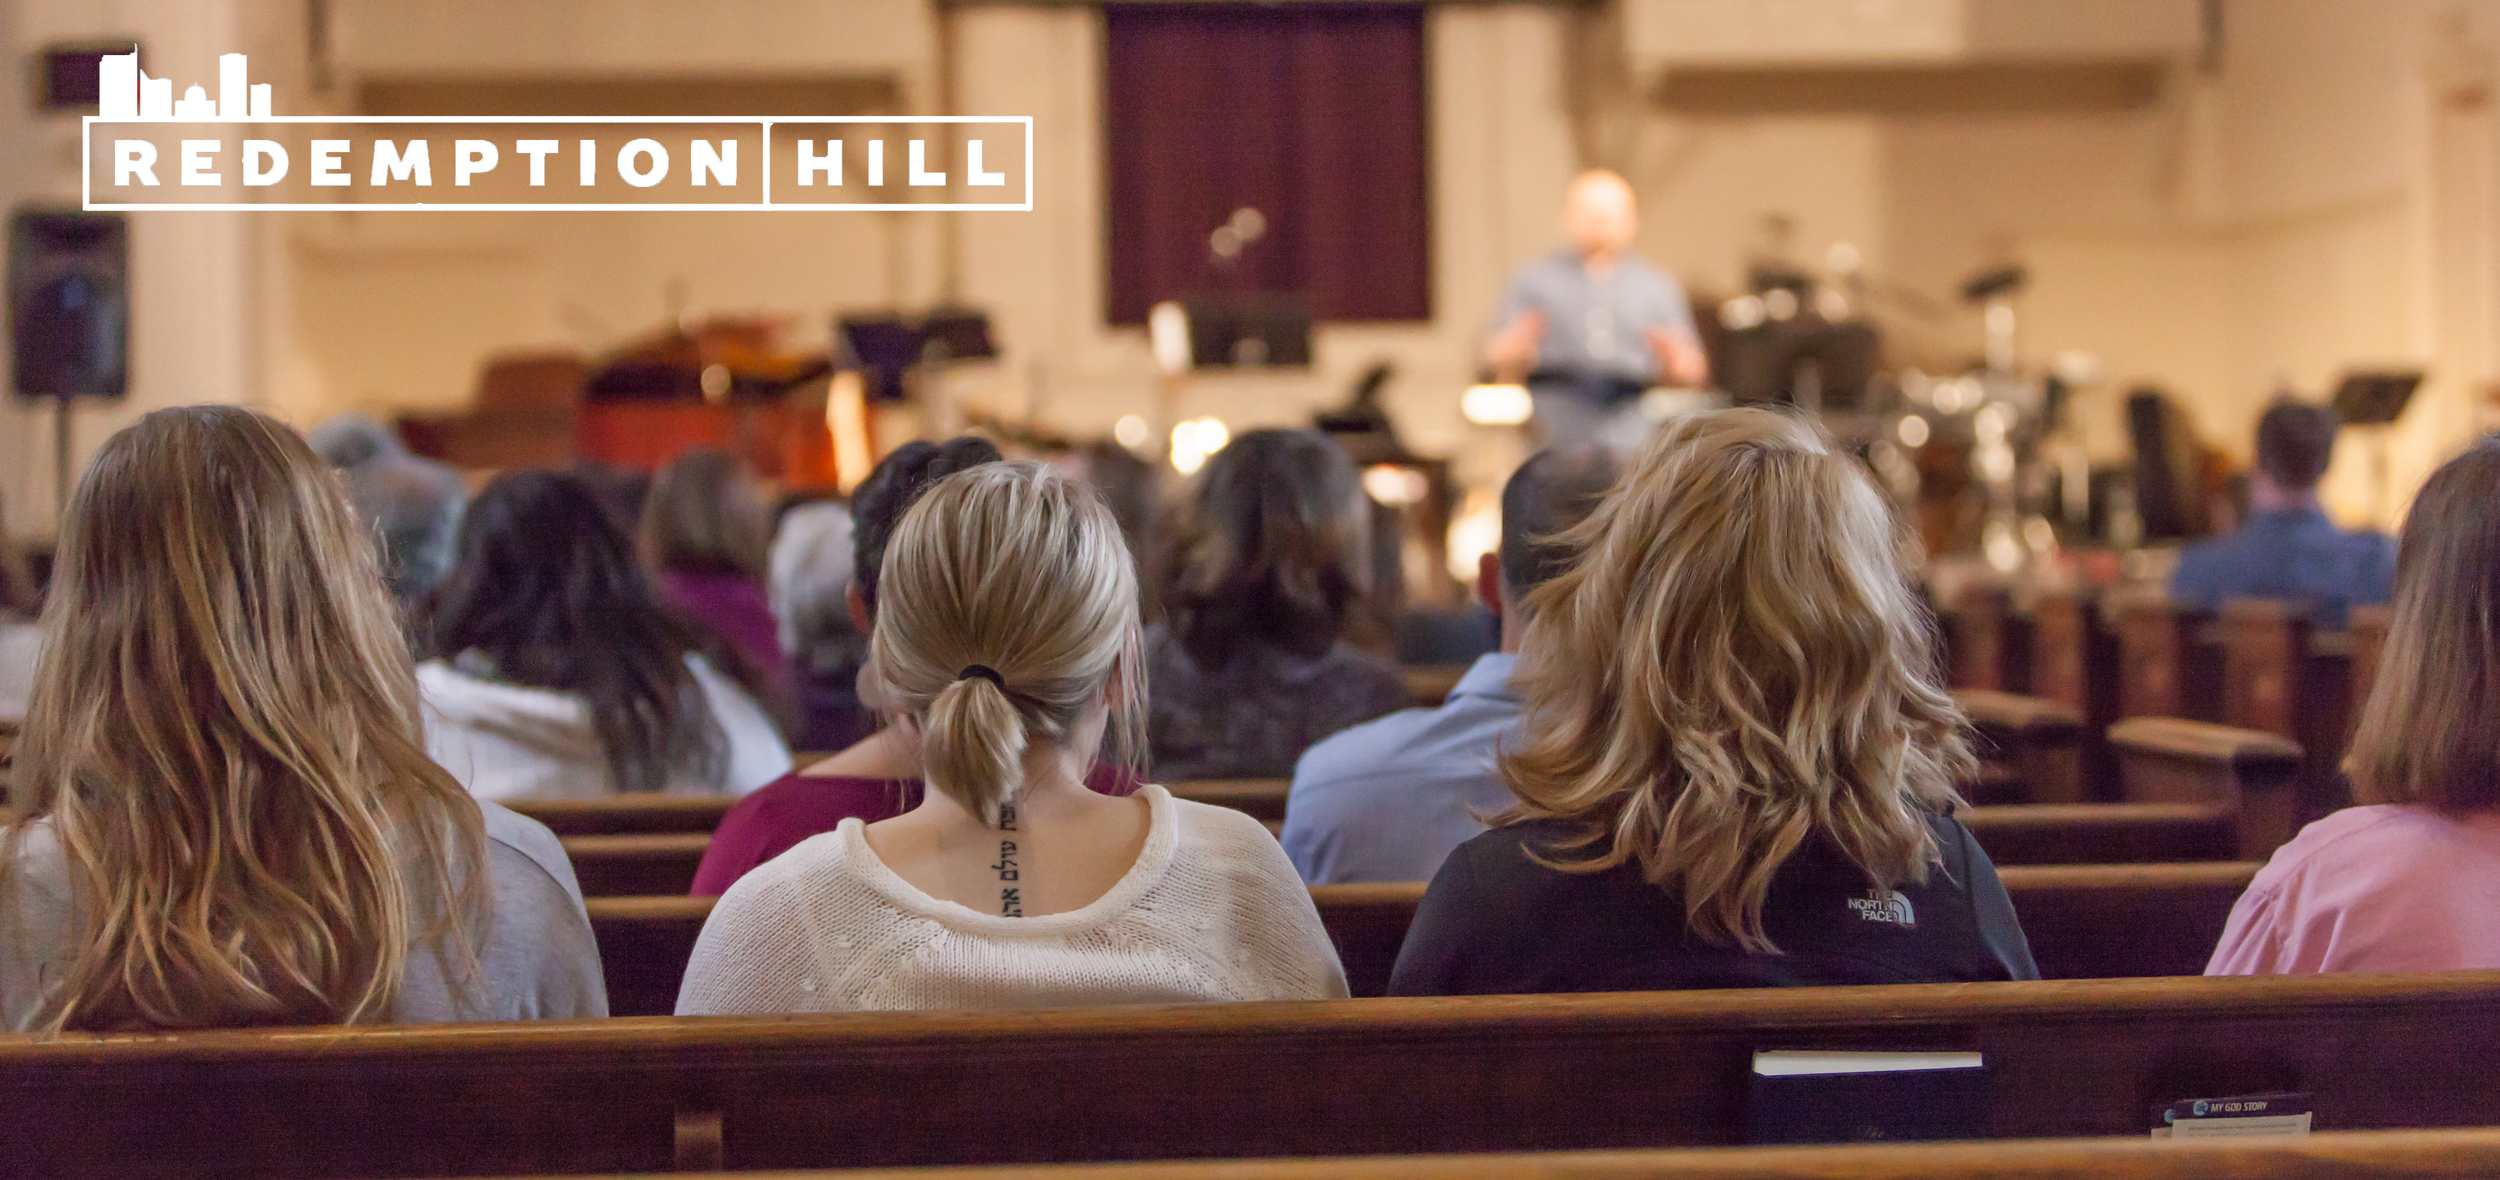 Redemption Hill is a non-denominational church serving West Boise, Idaho and beyond. Find out more here: